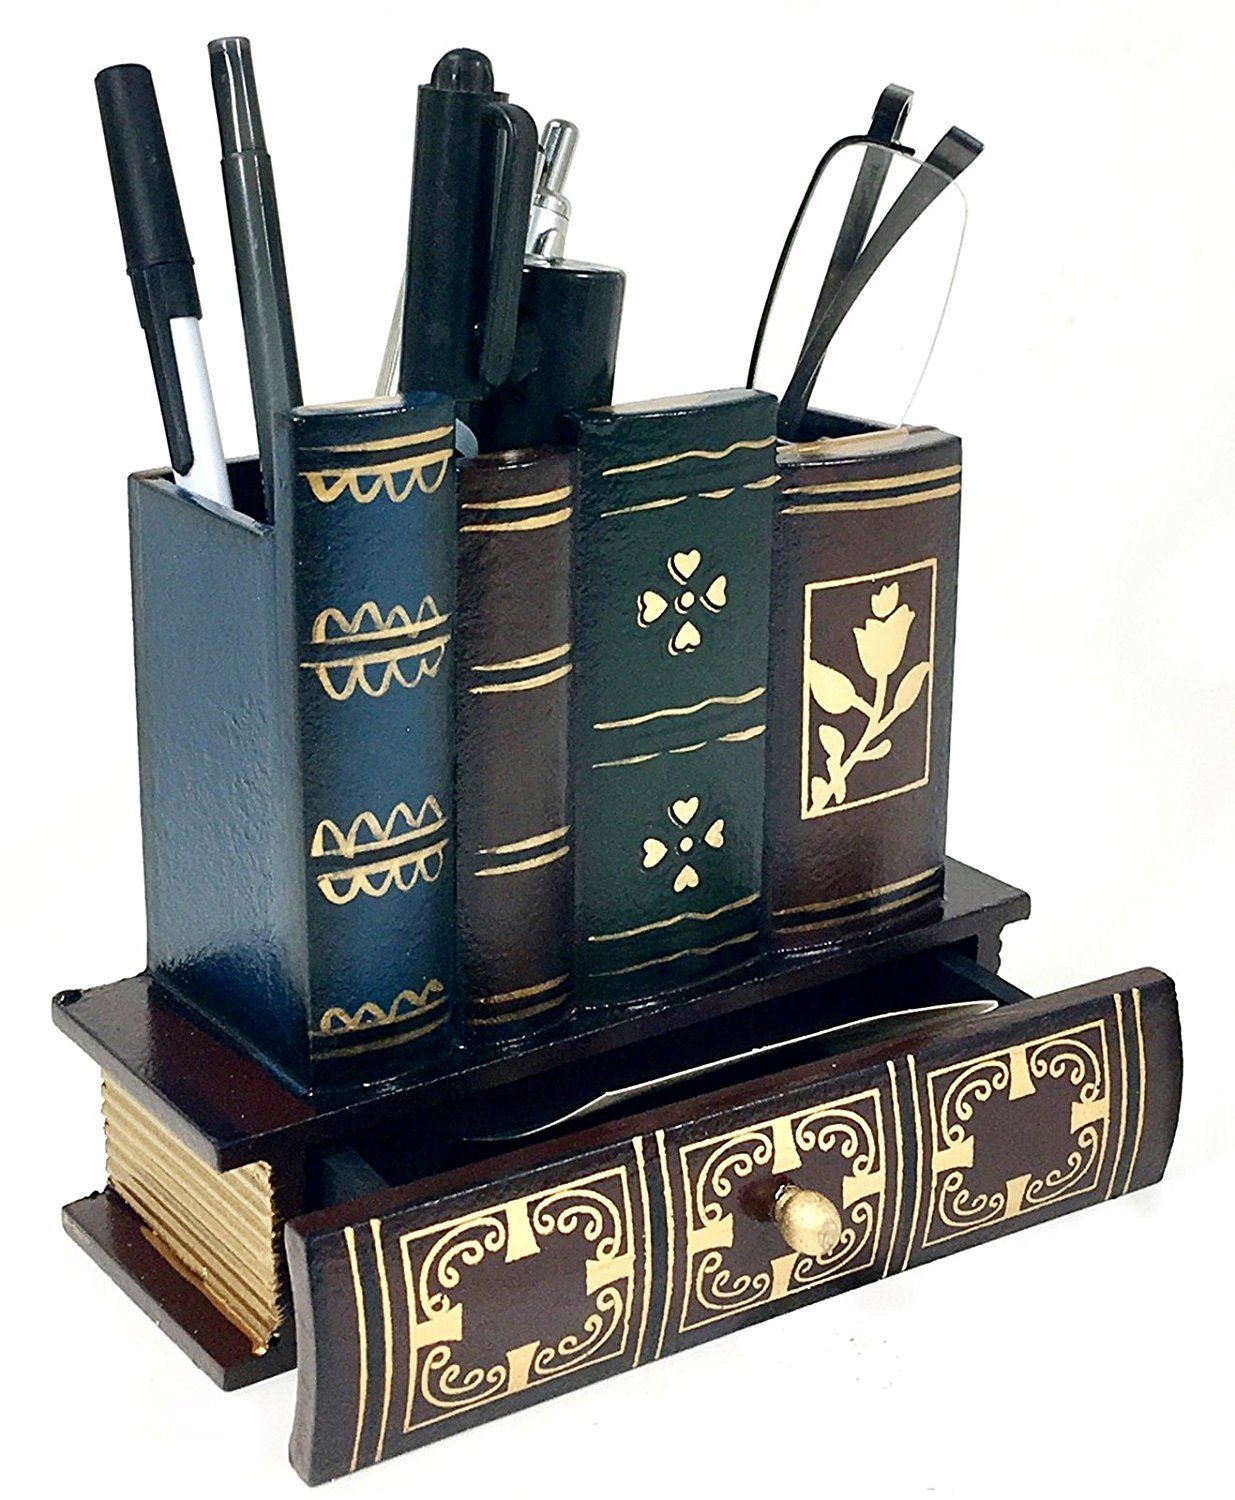 Image result for Decorative Library Books Design Wooden Office Supply Caddy Pencil Holder Organizer with Bottom Drawer